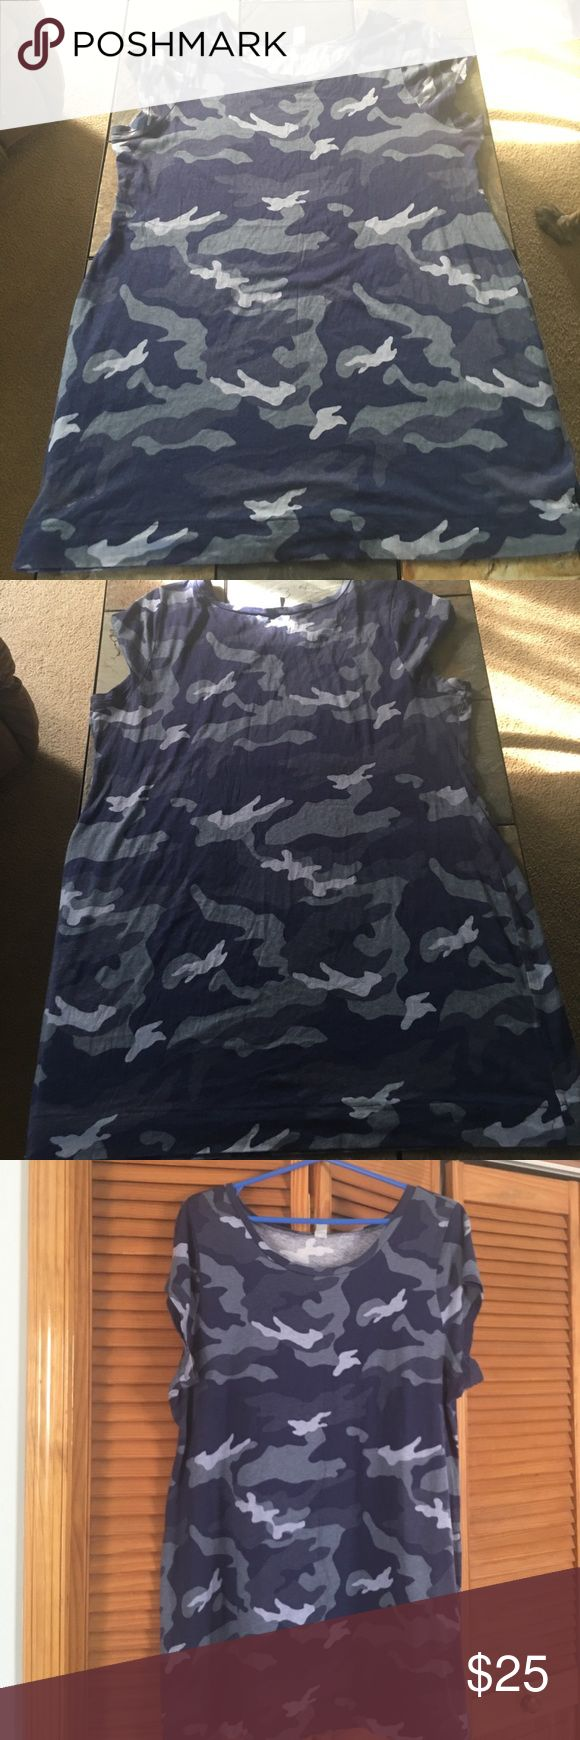 "🔵  NWOT -  OLD NAVY CAMO DRESS 🔵 AWESOME OLD NAVY BLUE AND GRAYISH CAMO TEE SHIRT DRESS, NWOT, NEVER WORN.  EXCELLENT CONDITION, NO DAMAGES, FLAWS, RIPS, STAINS etc... LENGTH IS 24"" from ARMPIT TO BOTTOM. PRICE IS FIRM. Old Navy Dresses Mini"